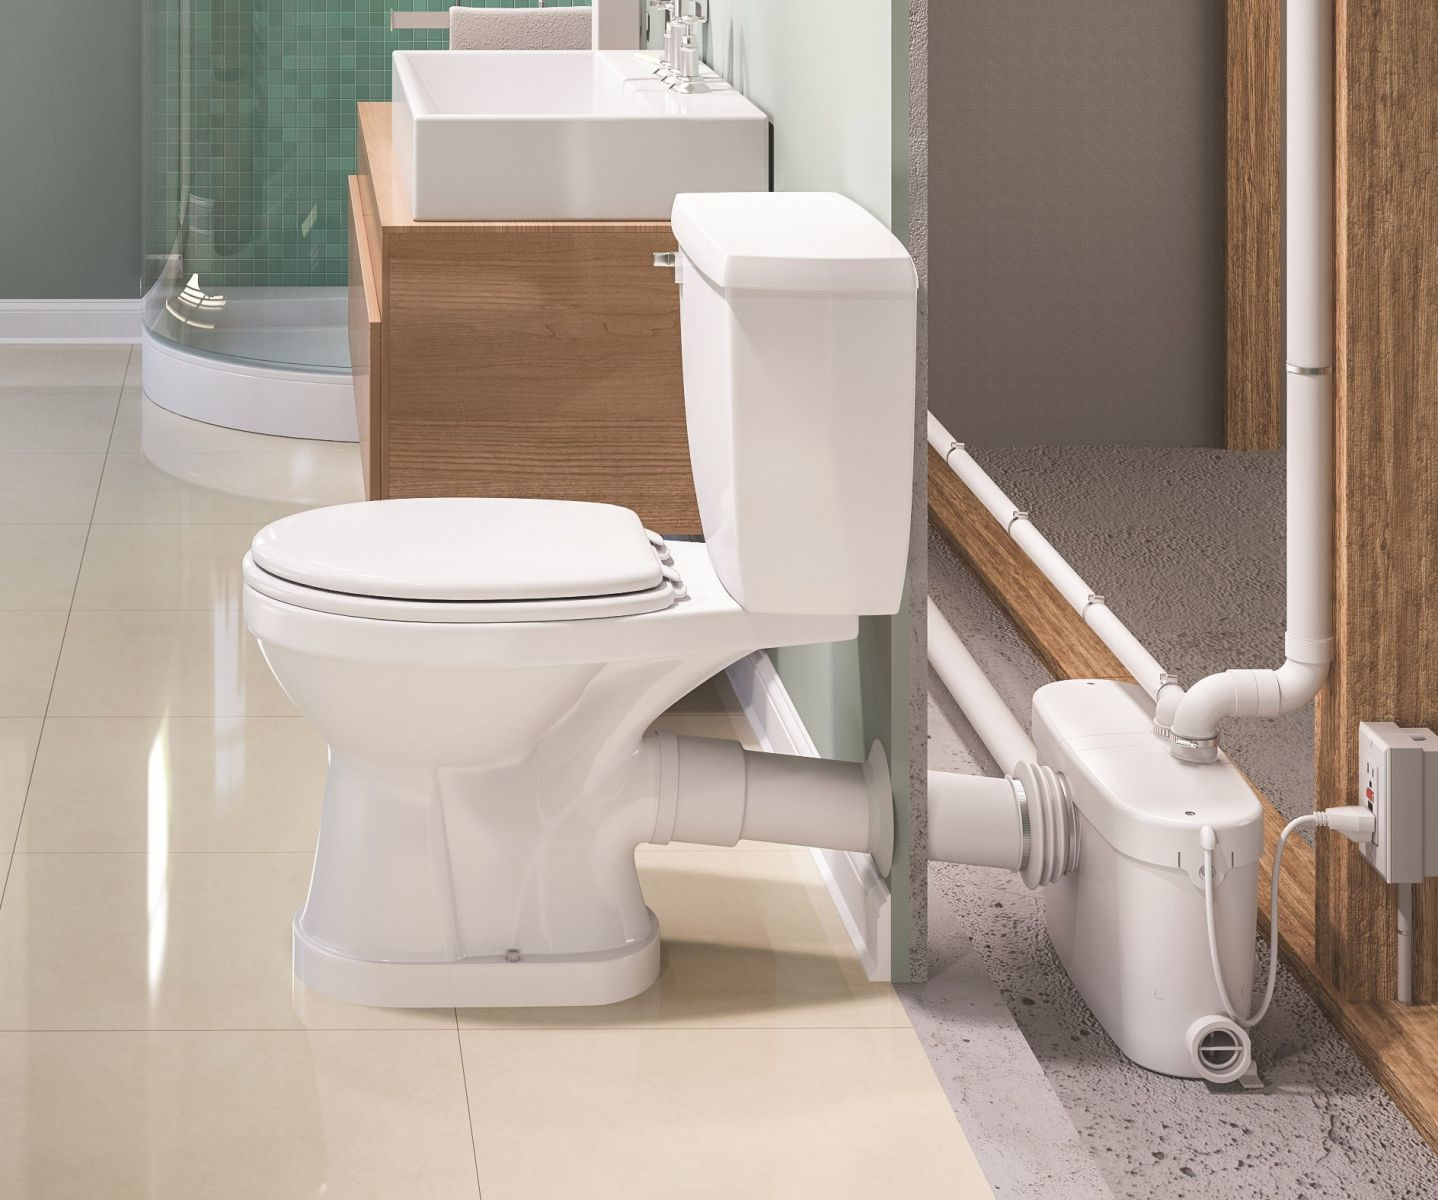 Inspirational Basement toilet Systems